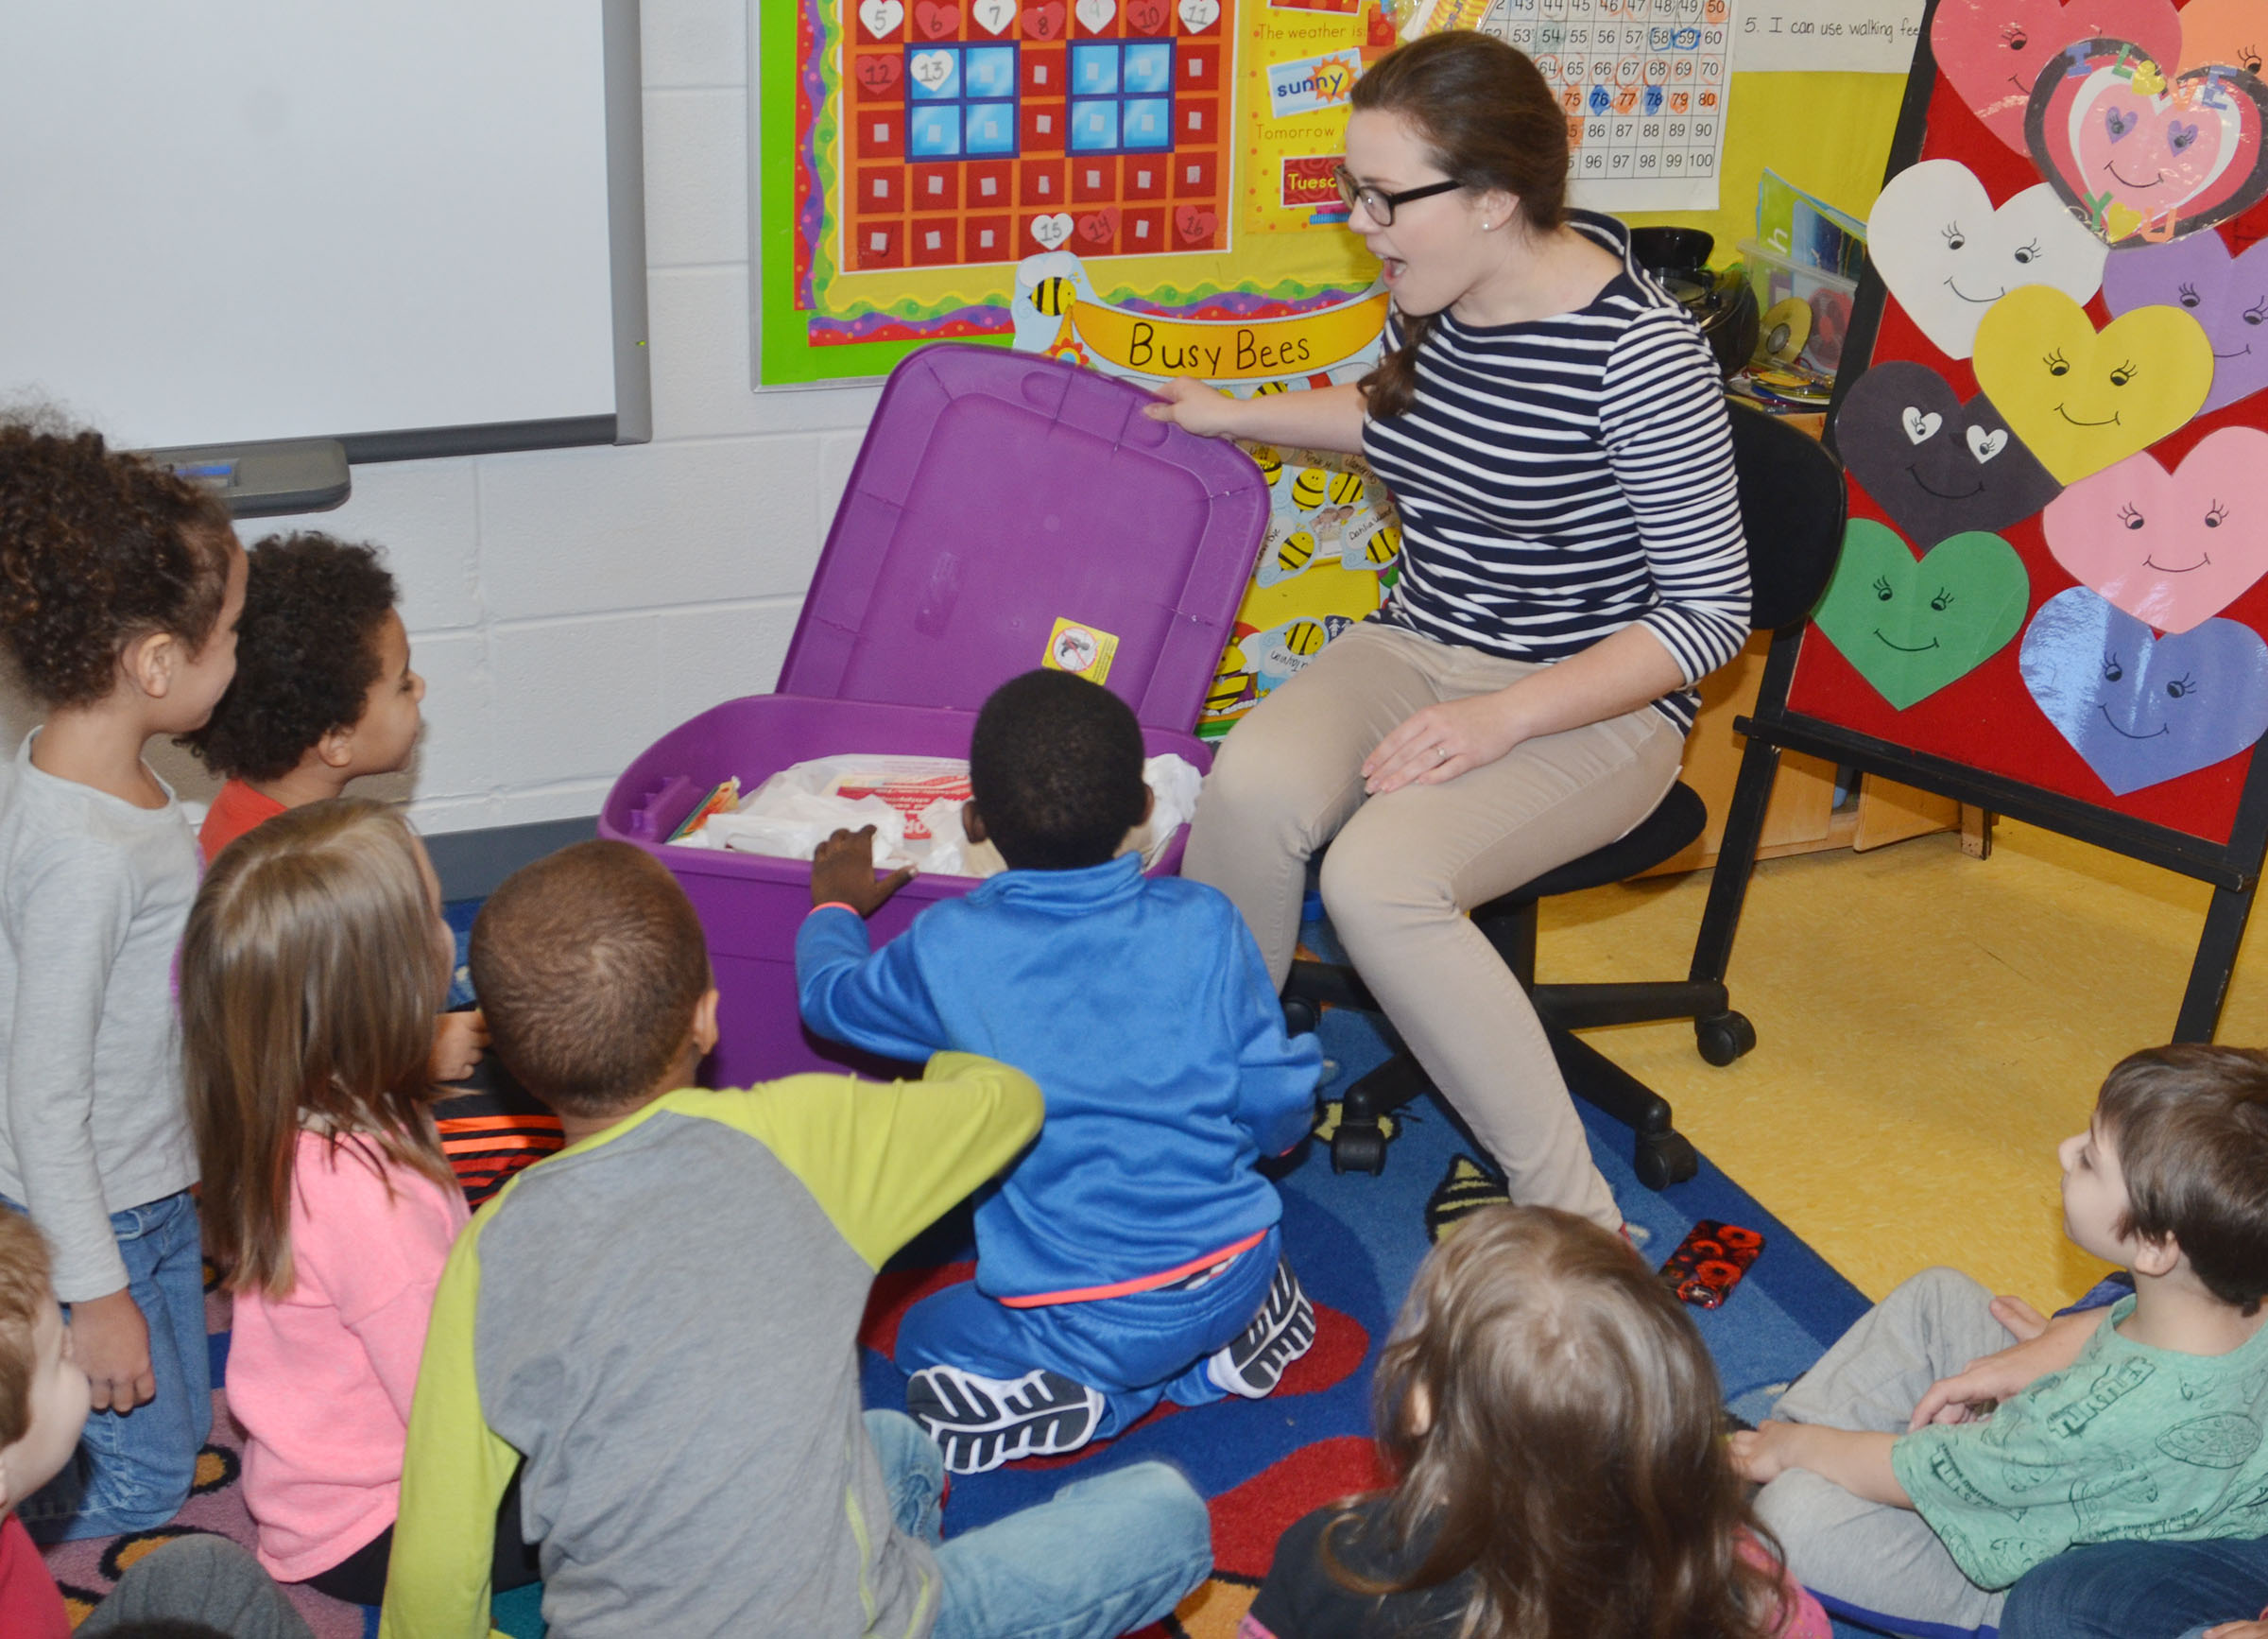 Campbellsville University education student Amanda Hamilton shows CES preschool students the books that were donated to them.